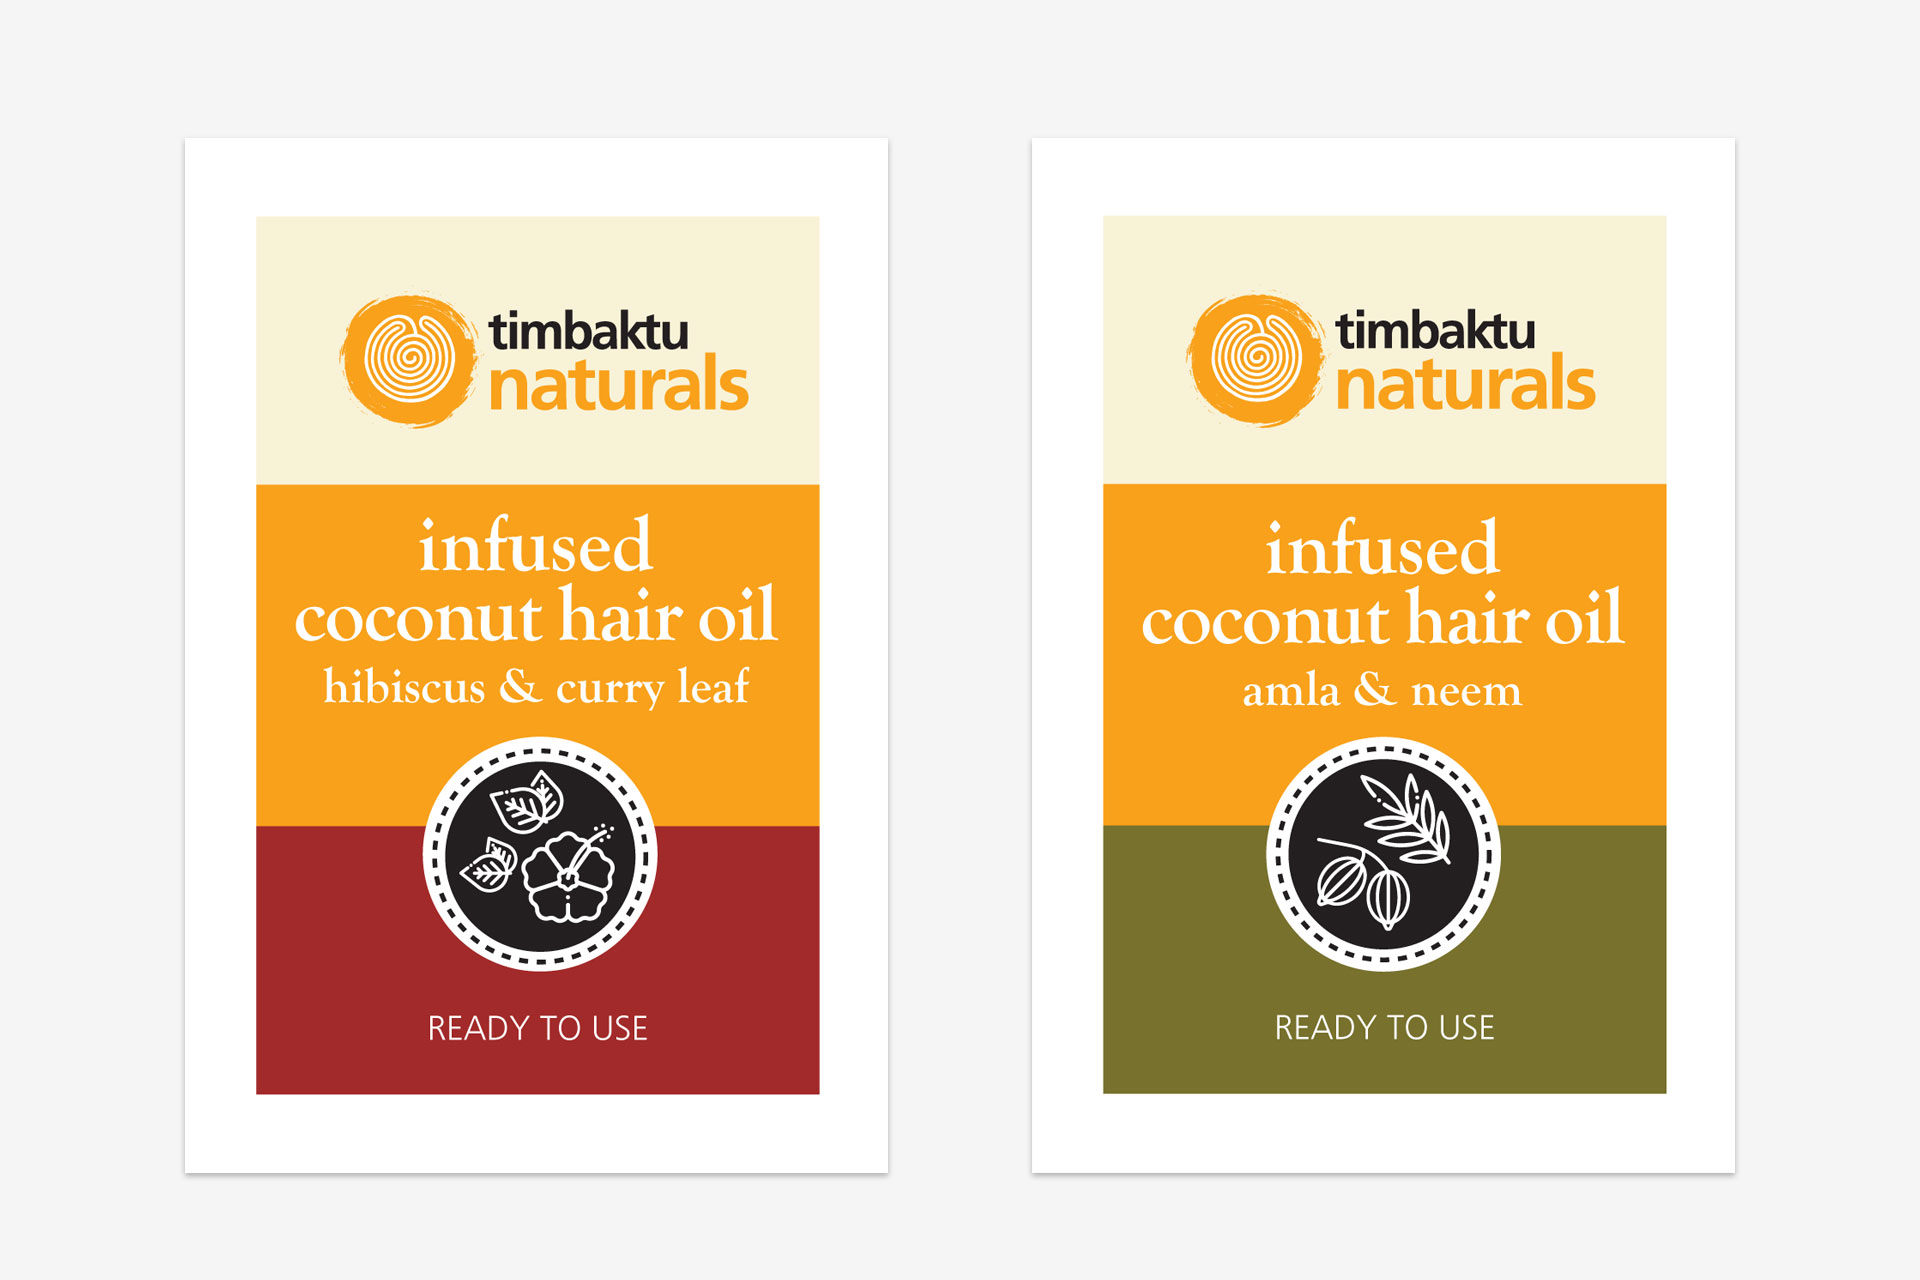 Naturals products from Timbaktu Collective